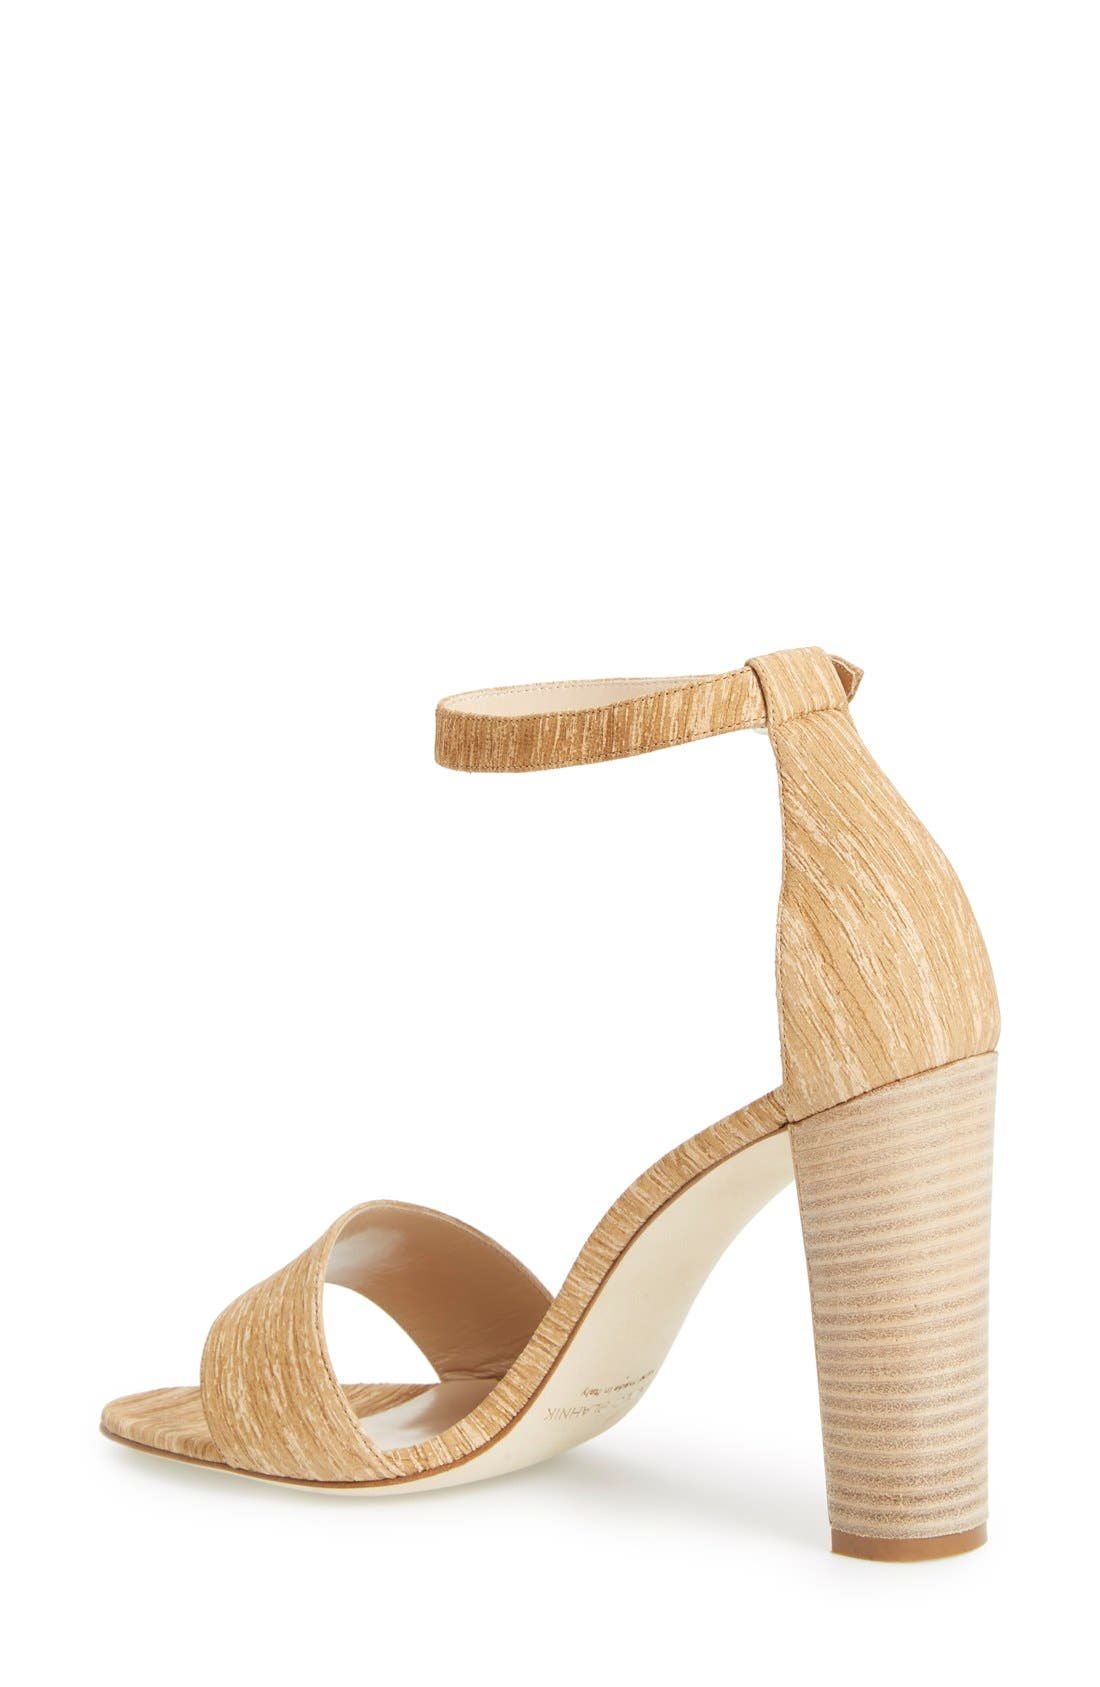 MANOLO BLAHNIK,                             'Lauratopri' Sandal,                             Alternate thumbnail 4, color,                             250